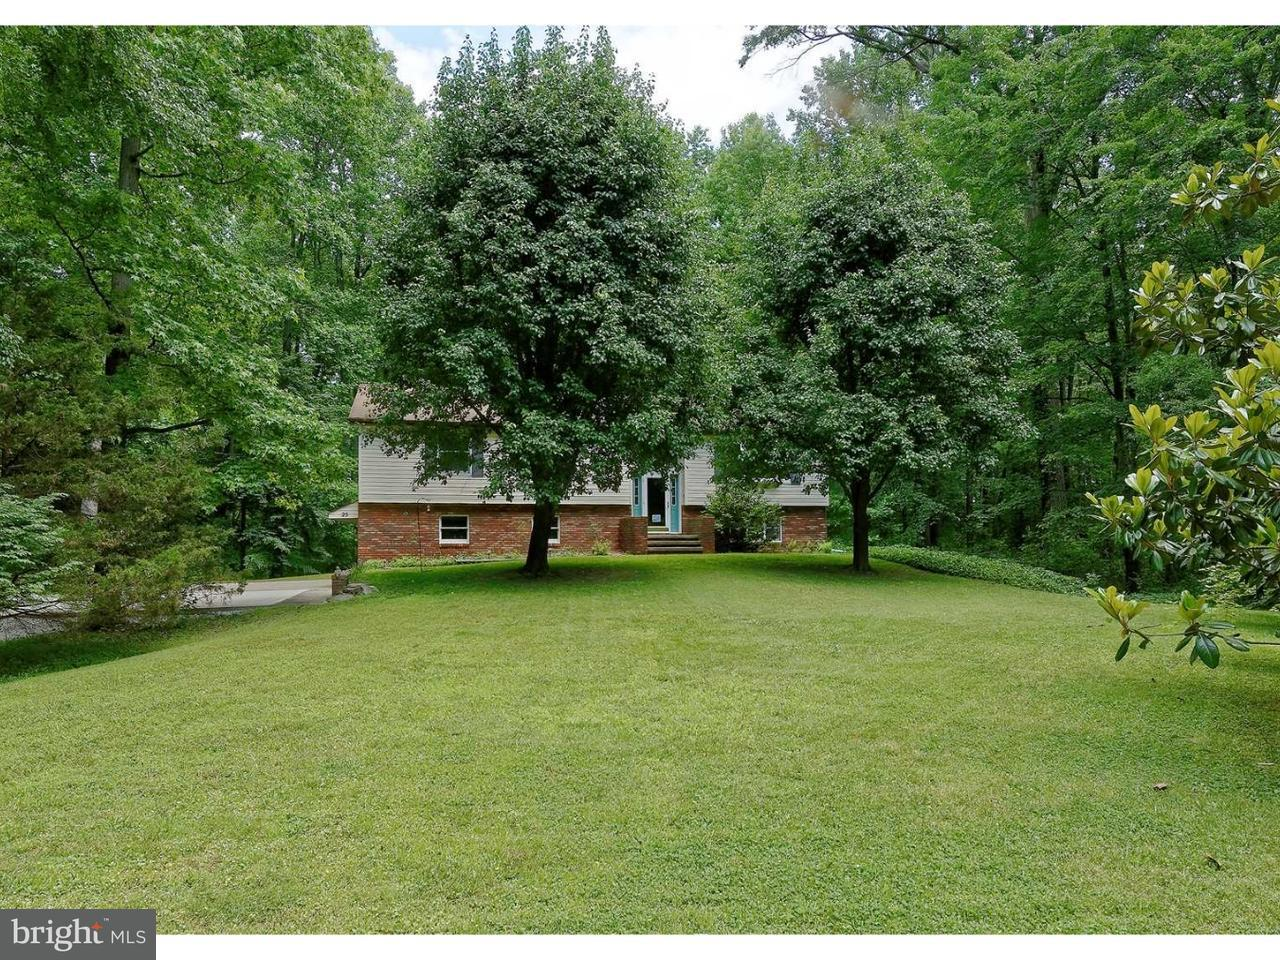 Single Family Home for Sale at 25 WILD OAKS Drive Quinton, New Jersey 08079 United States